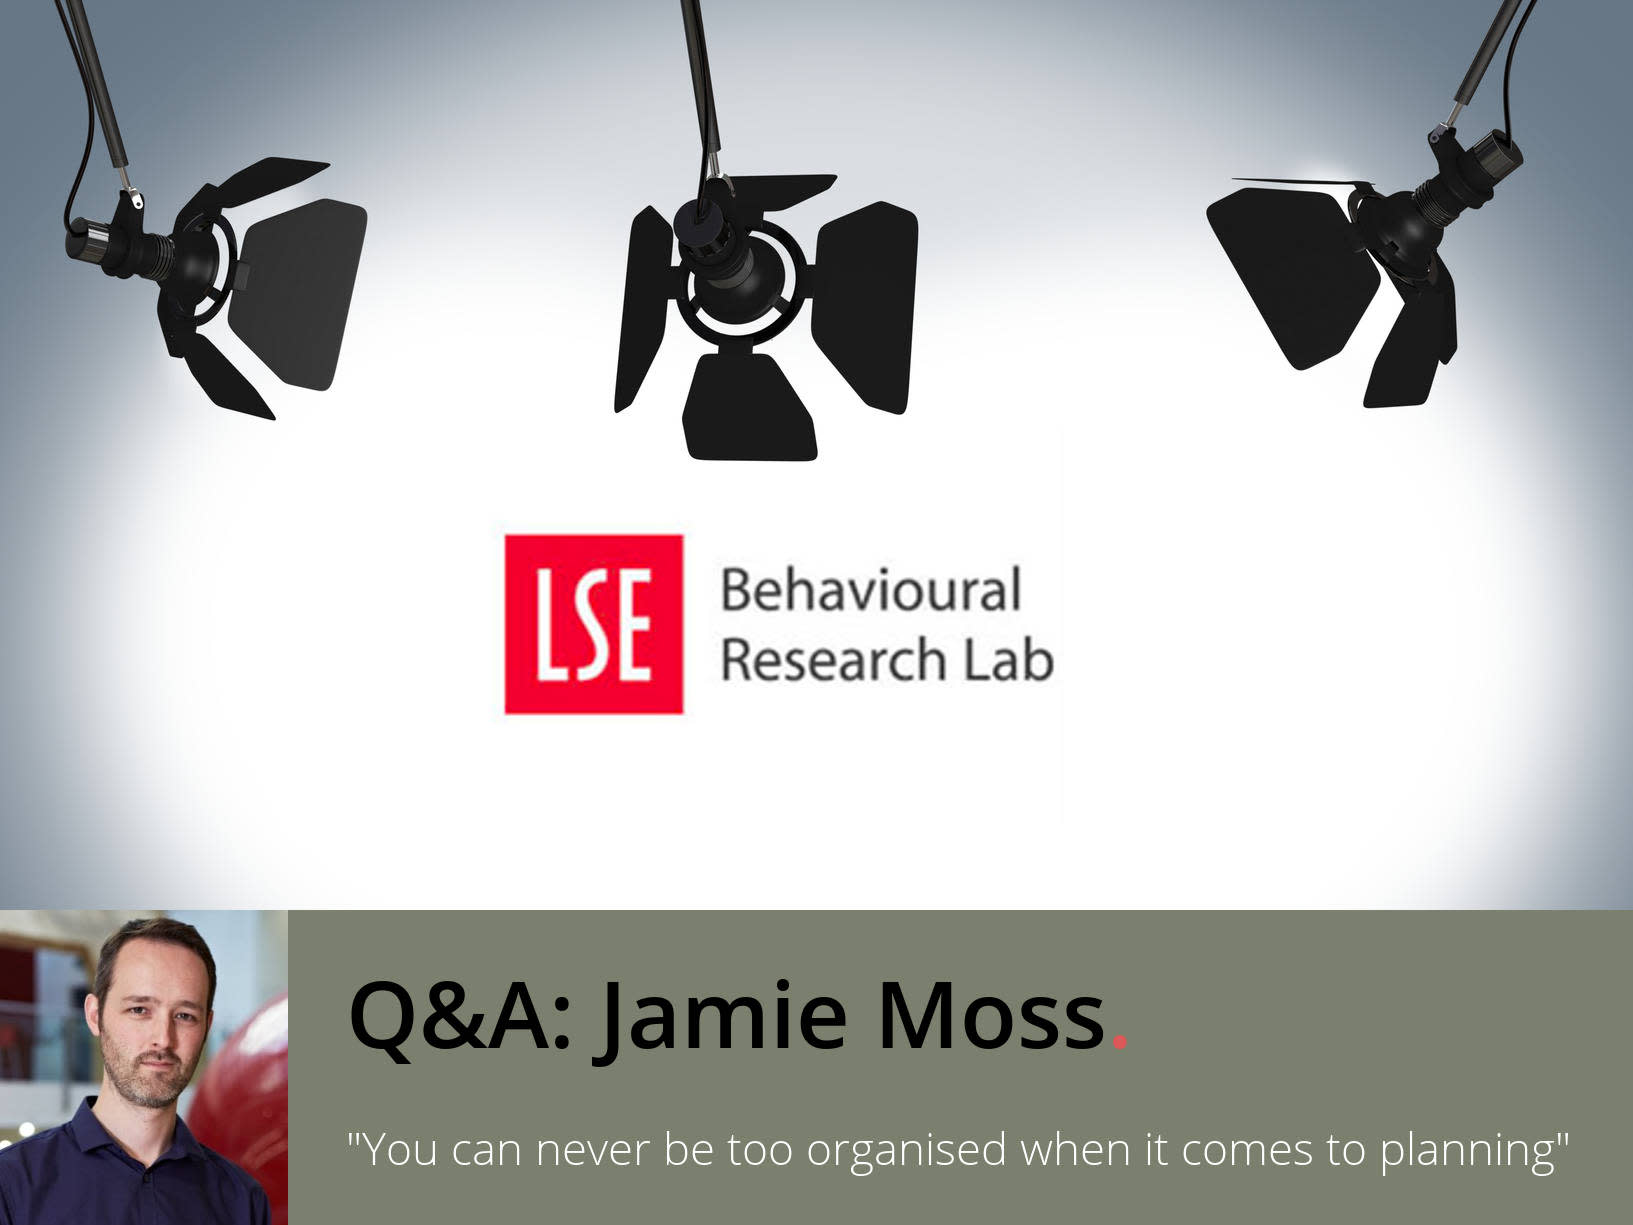 Q&A with Jamie Moss, Behavioural Research Lab at LSE